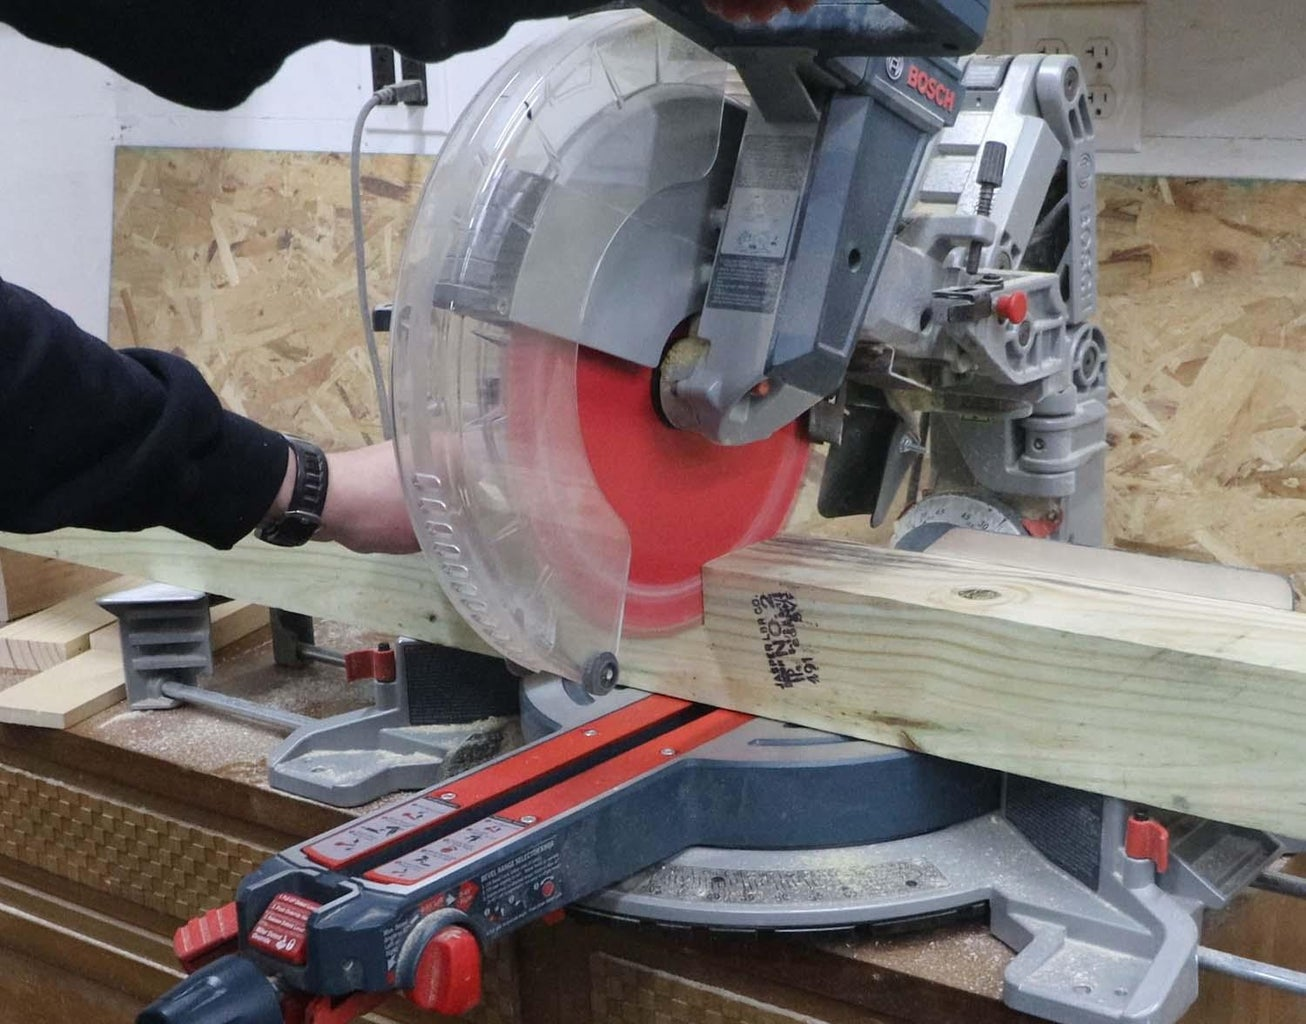 Cut Sleepers and Uprights to Length